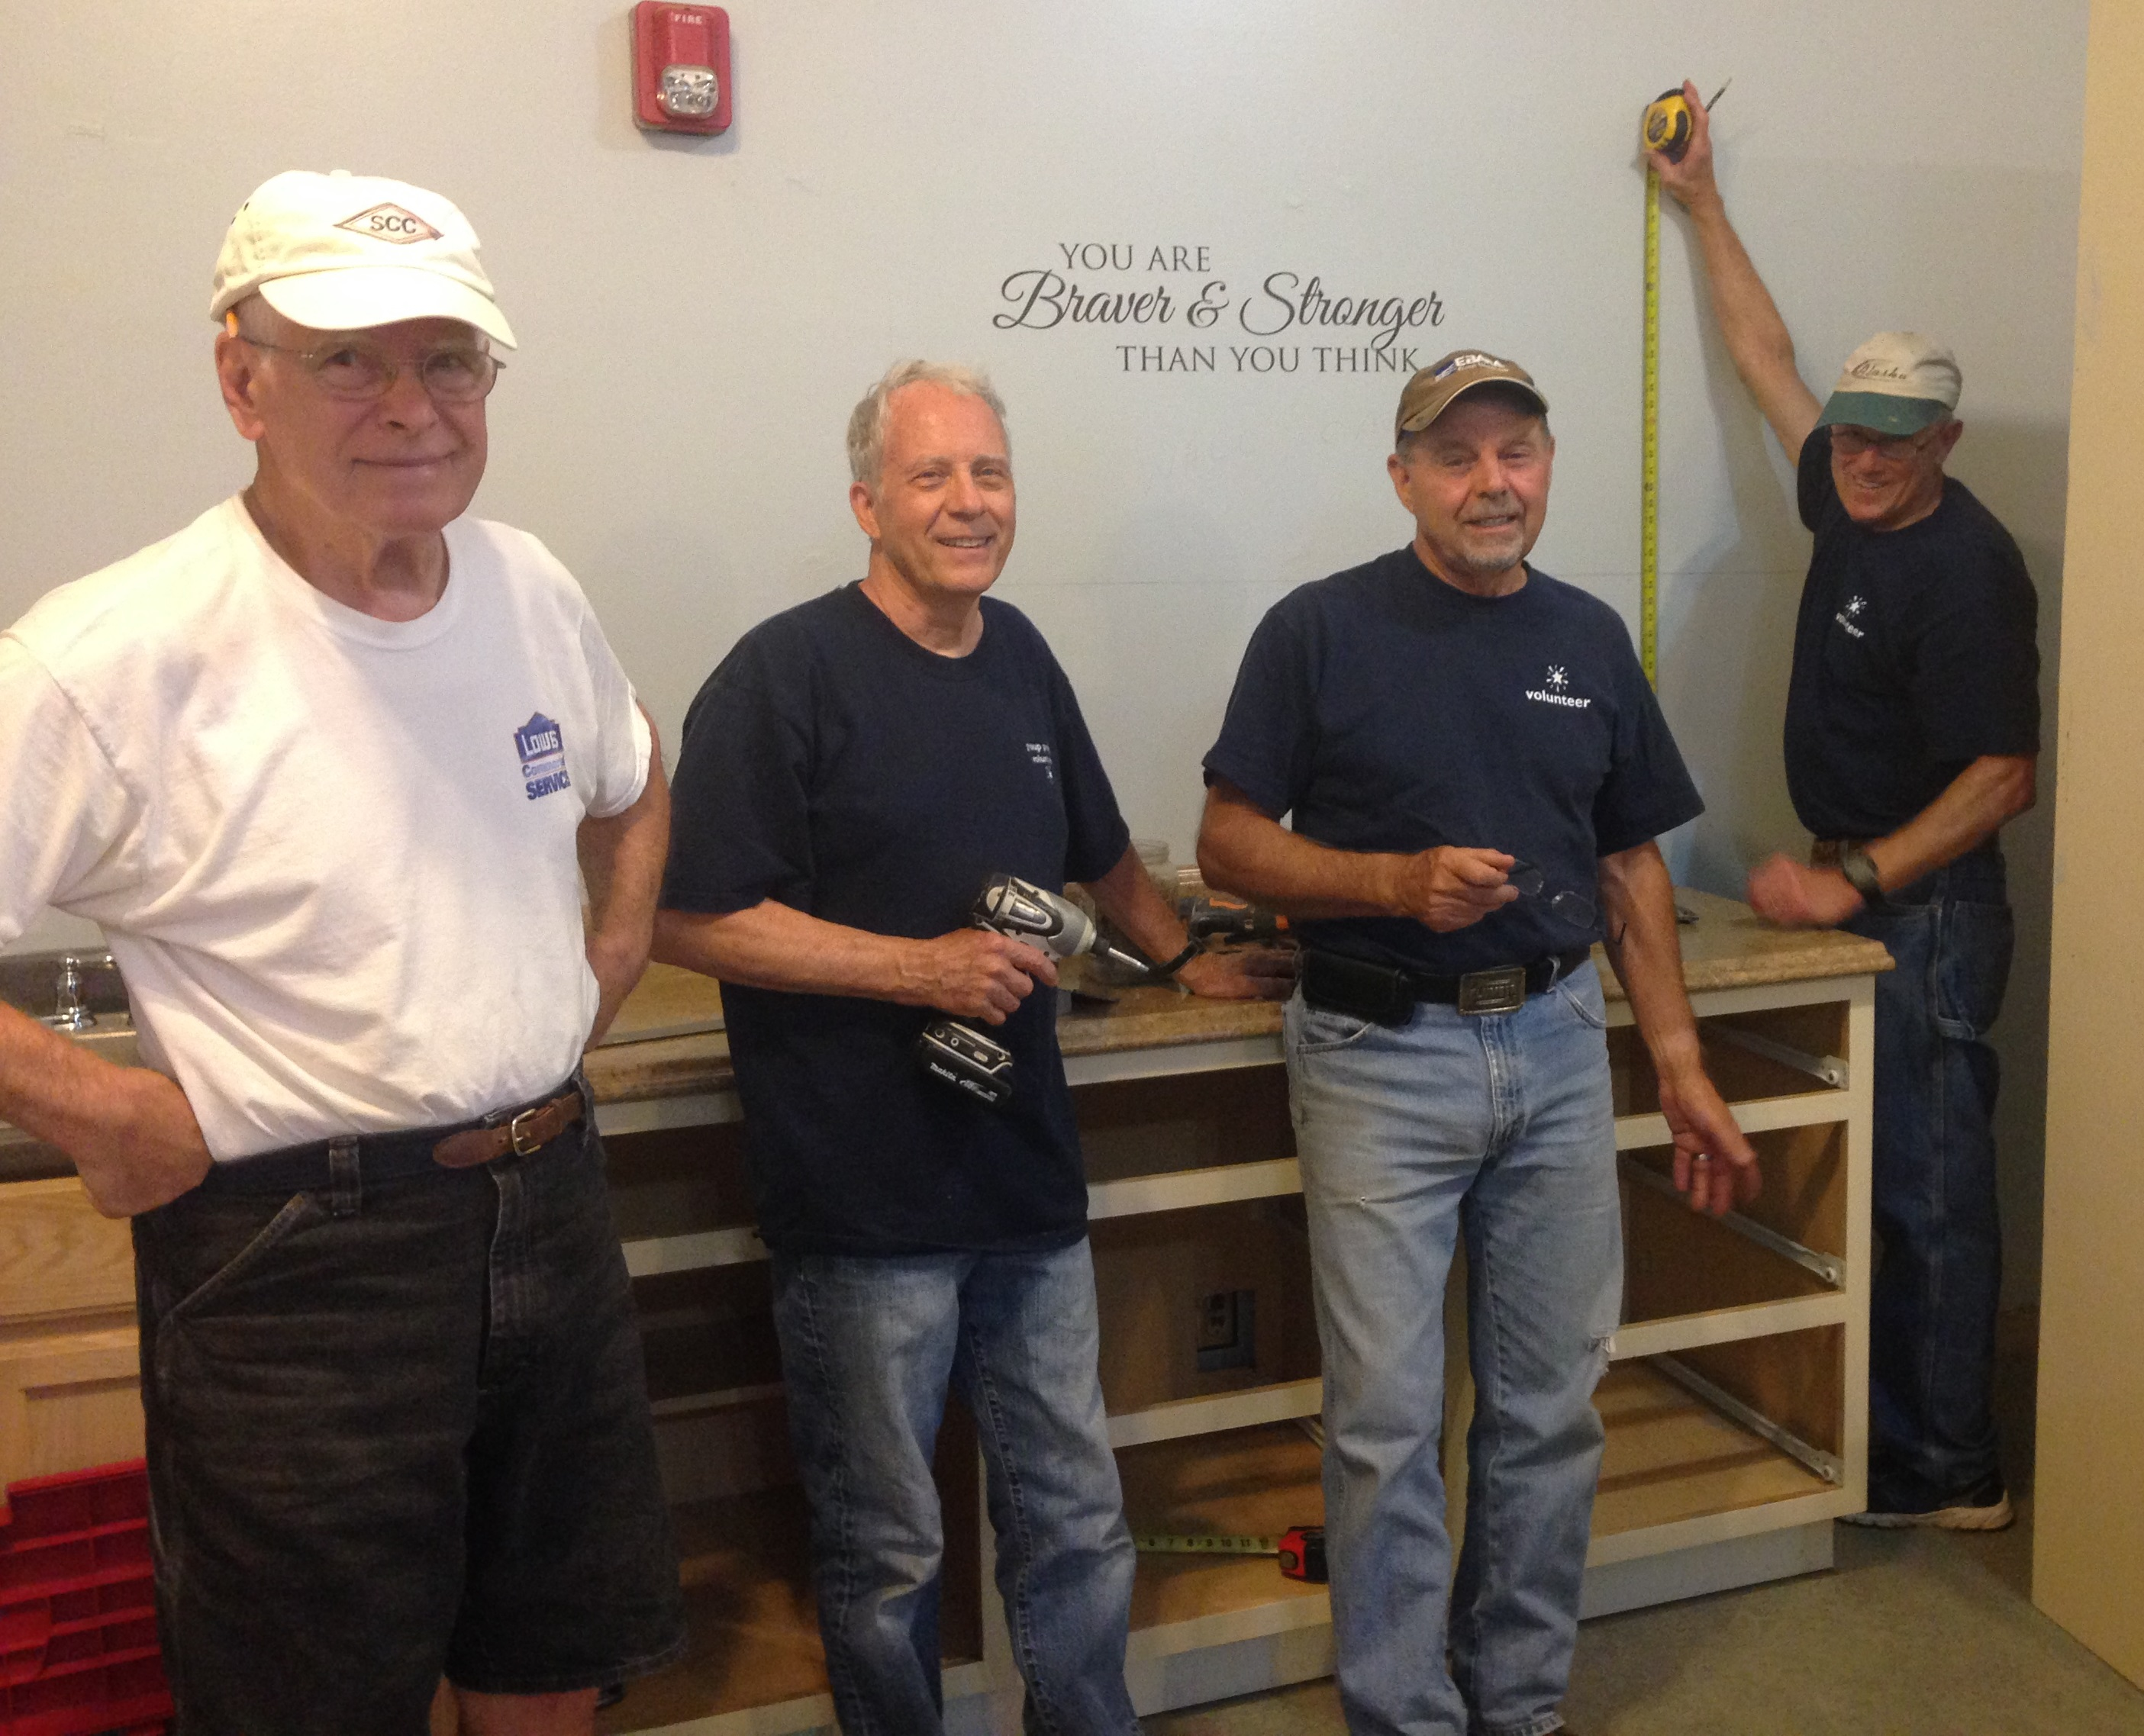 Volunteers from Mountain Park United Methodist Church installed cabinets at SaltLight Center.